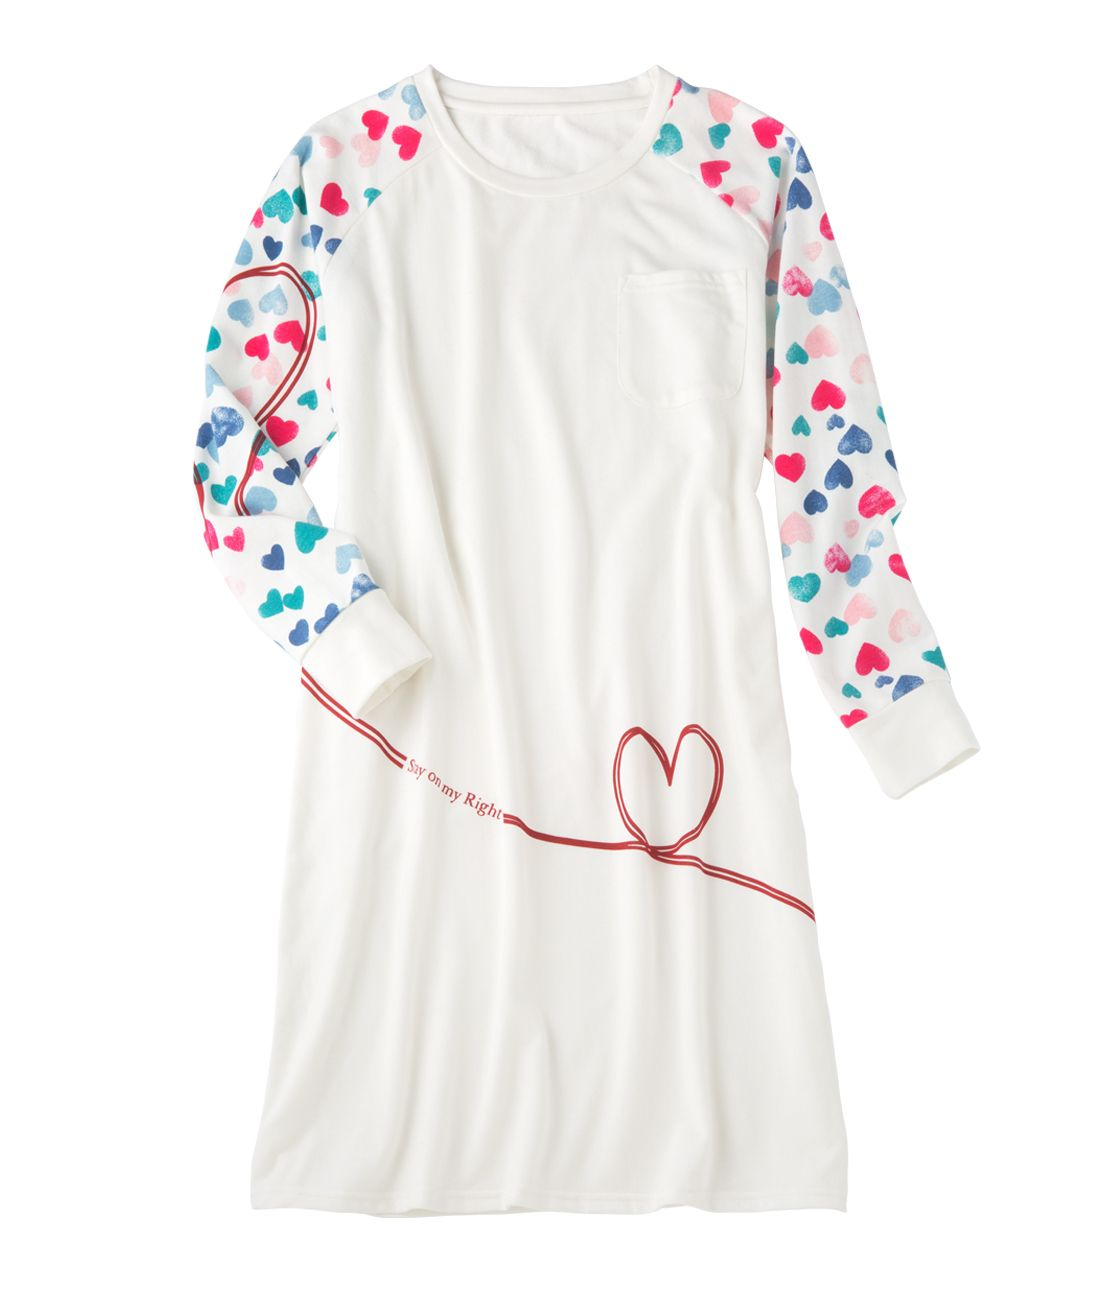 Relax neck point pajamas